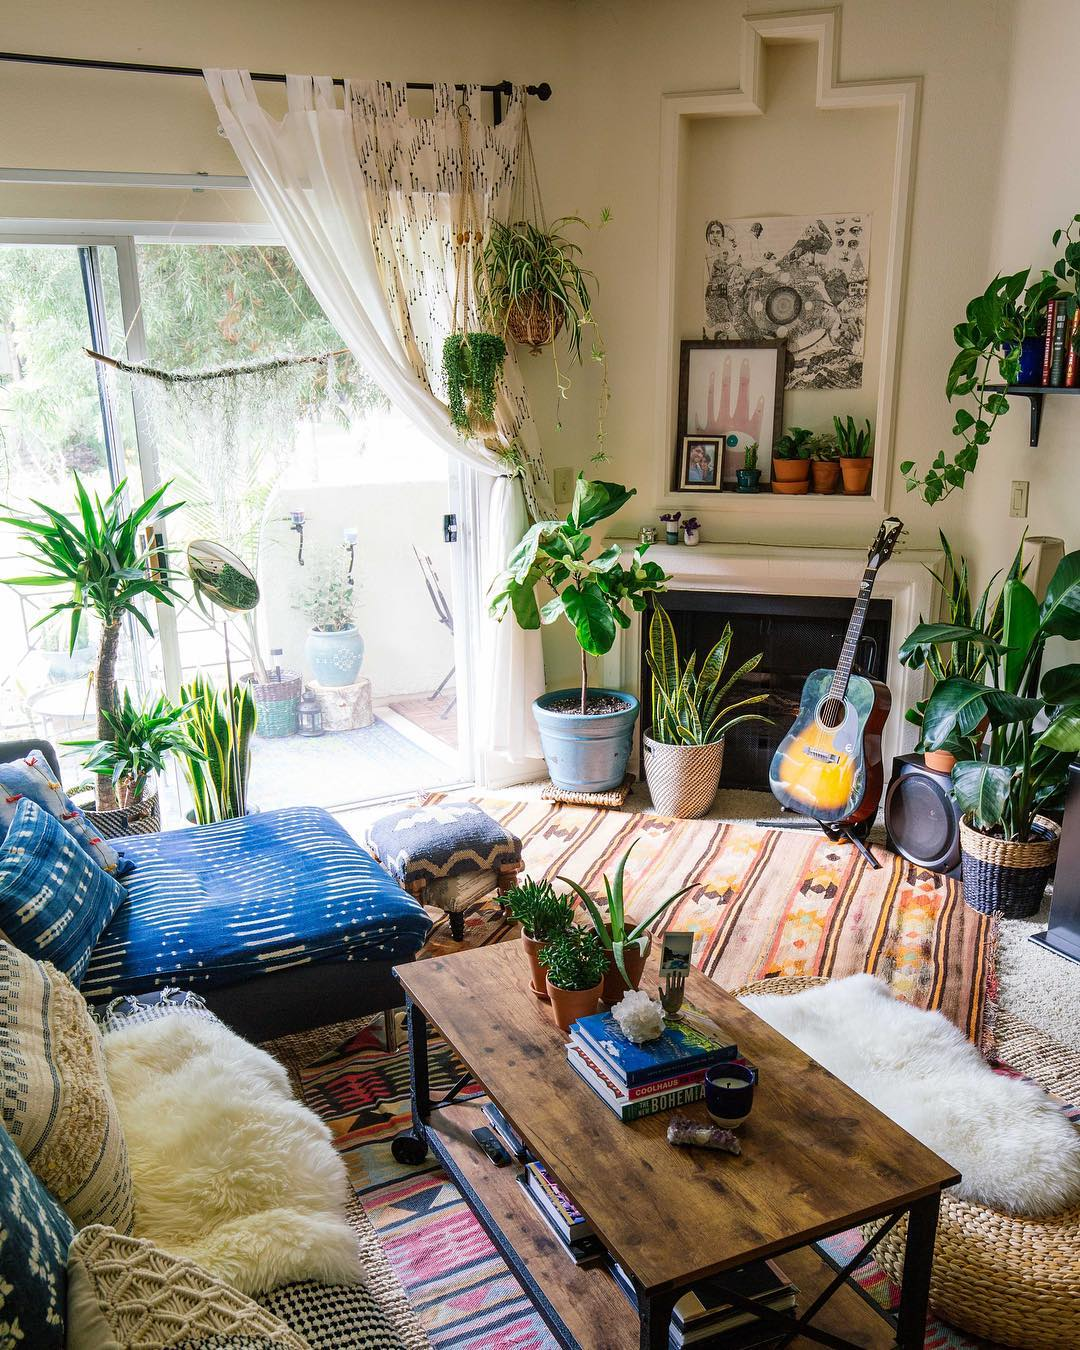 Our living room in September of 2016 - Photographed by Dabito for Justina Blakeney's book  The New Bohemians Handbook